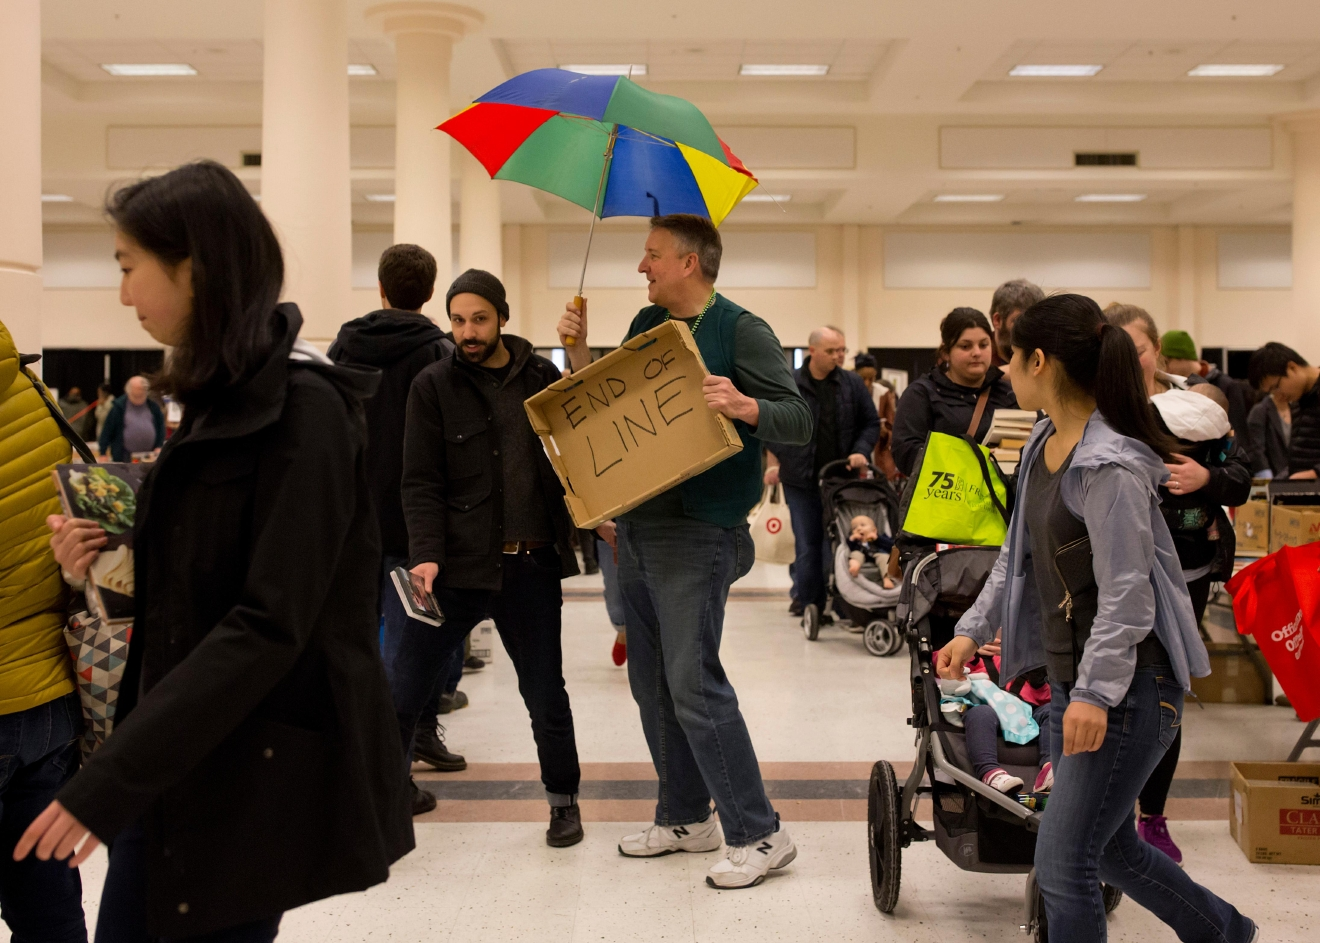 Steve Fawthrop, a board member of the Friends of Seattle Public Libraries, marks the end of the checkout line with a colorful umbrella during the Big Book Sale 2017, hosted by the Friends of Seattle Public LIbraries. (Sy Bean / Seattle Refined)